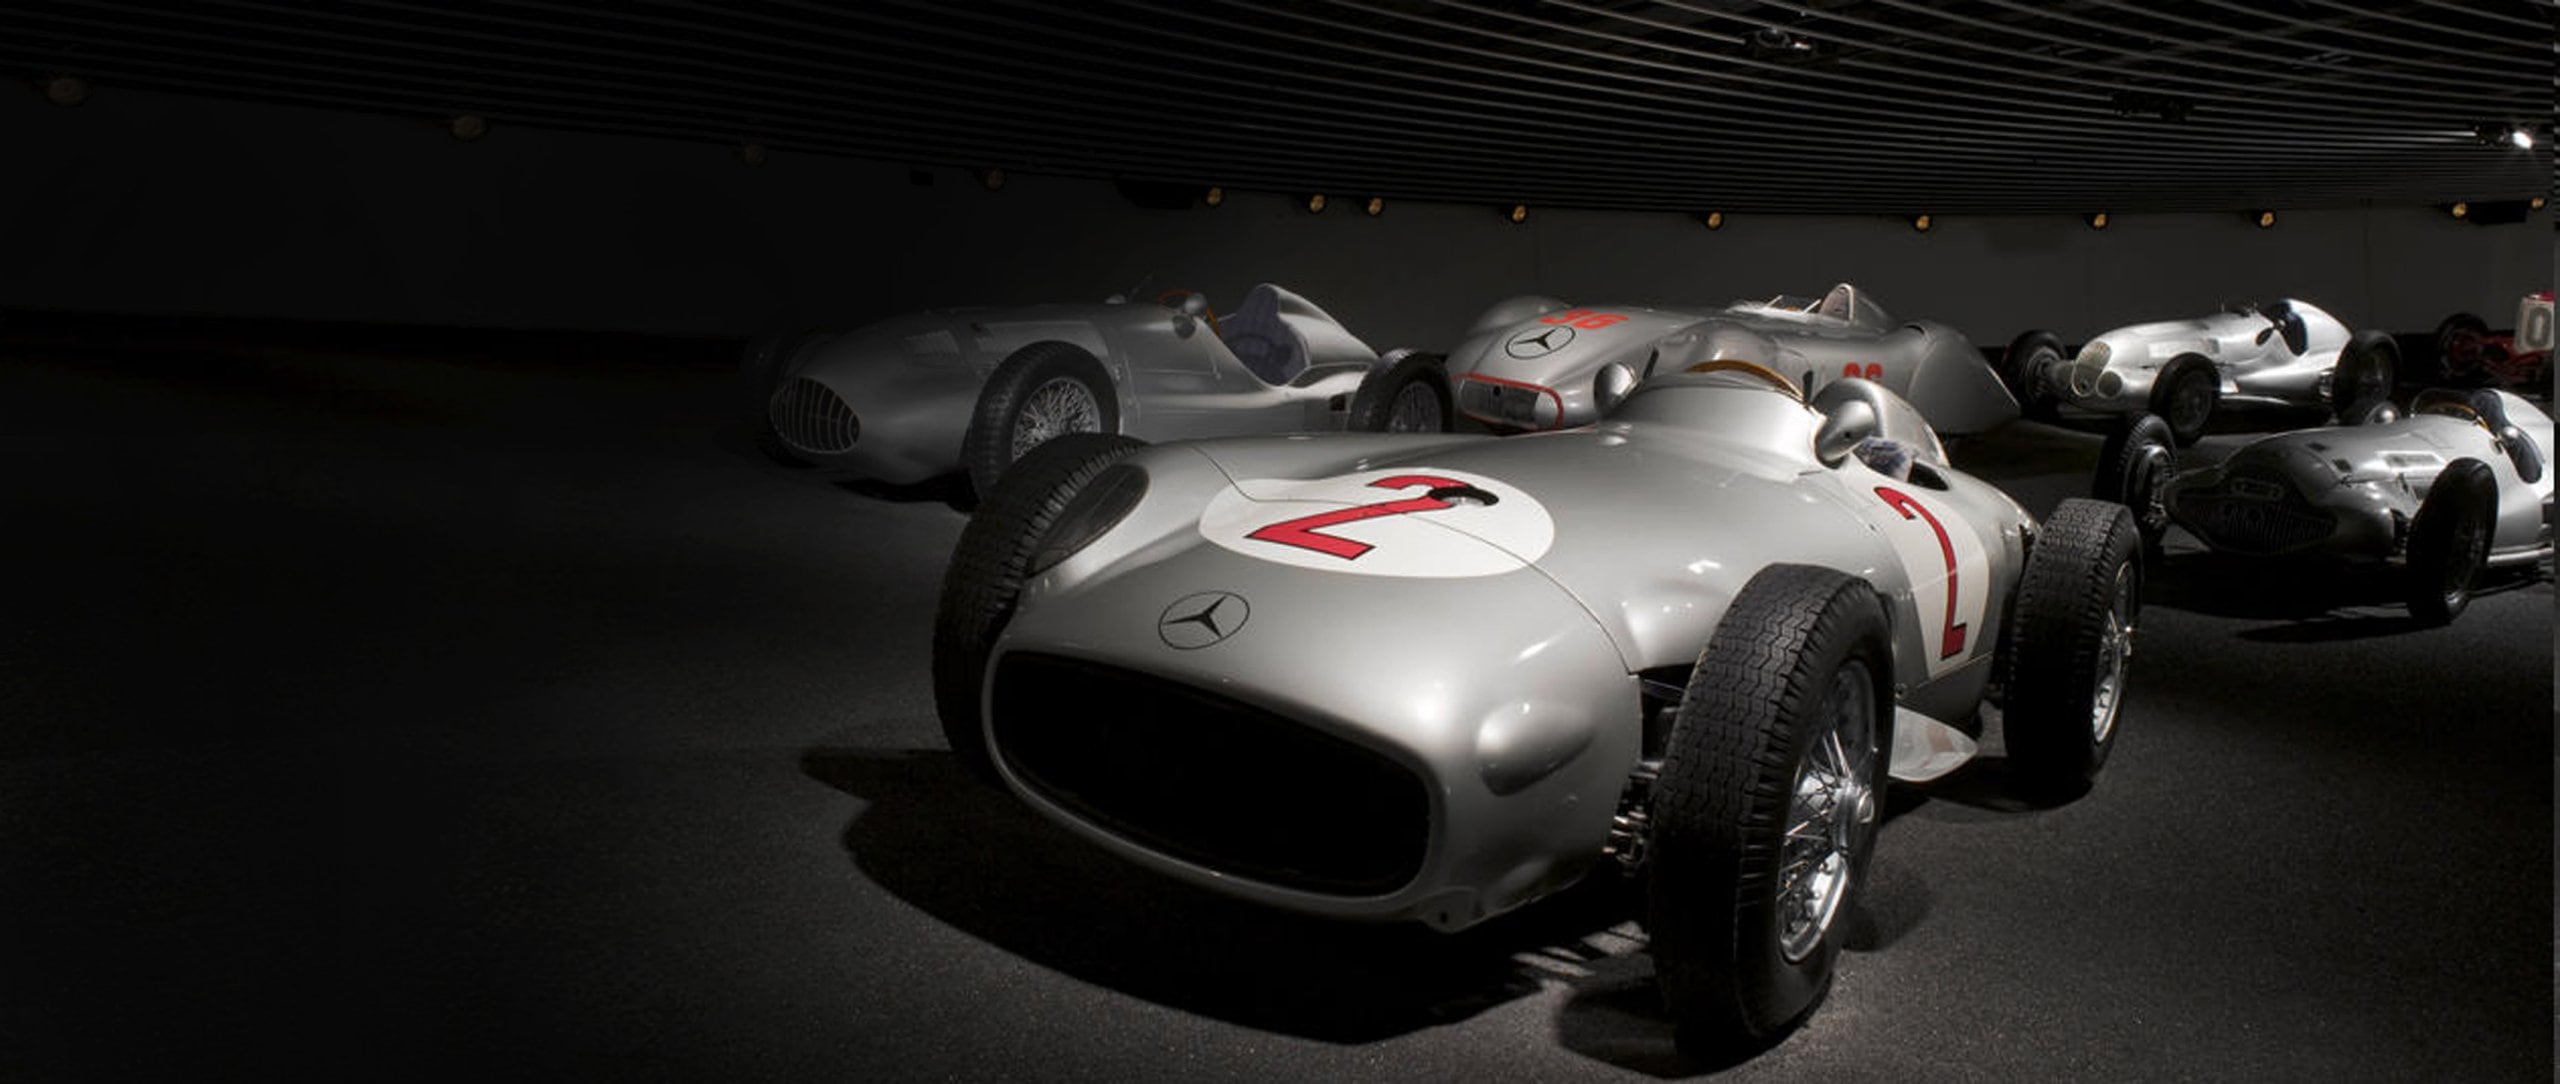 Mercedes-Benz W 196 R 2.5-liter racing car.